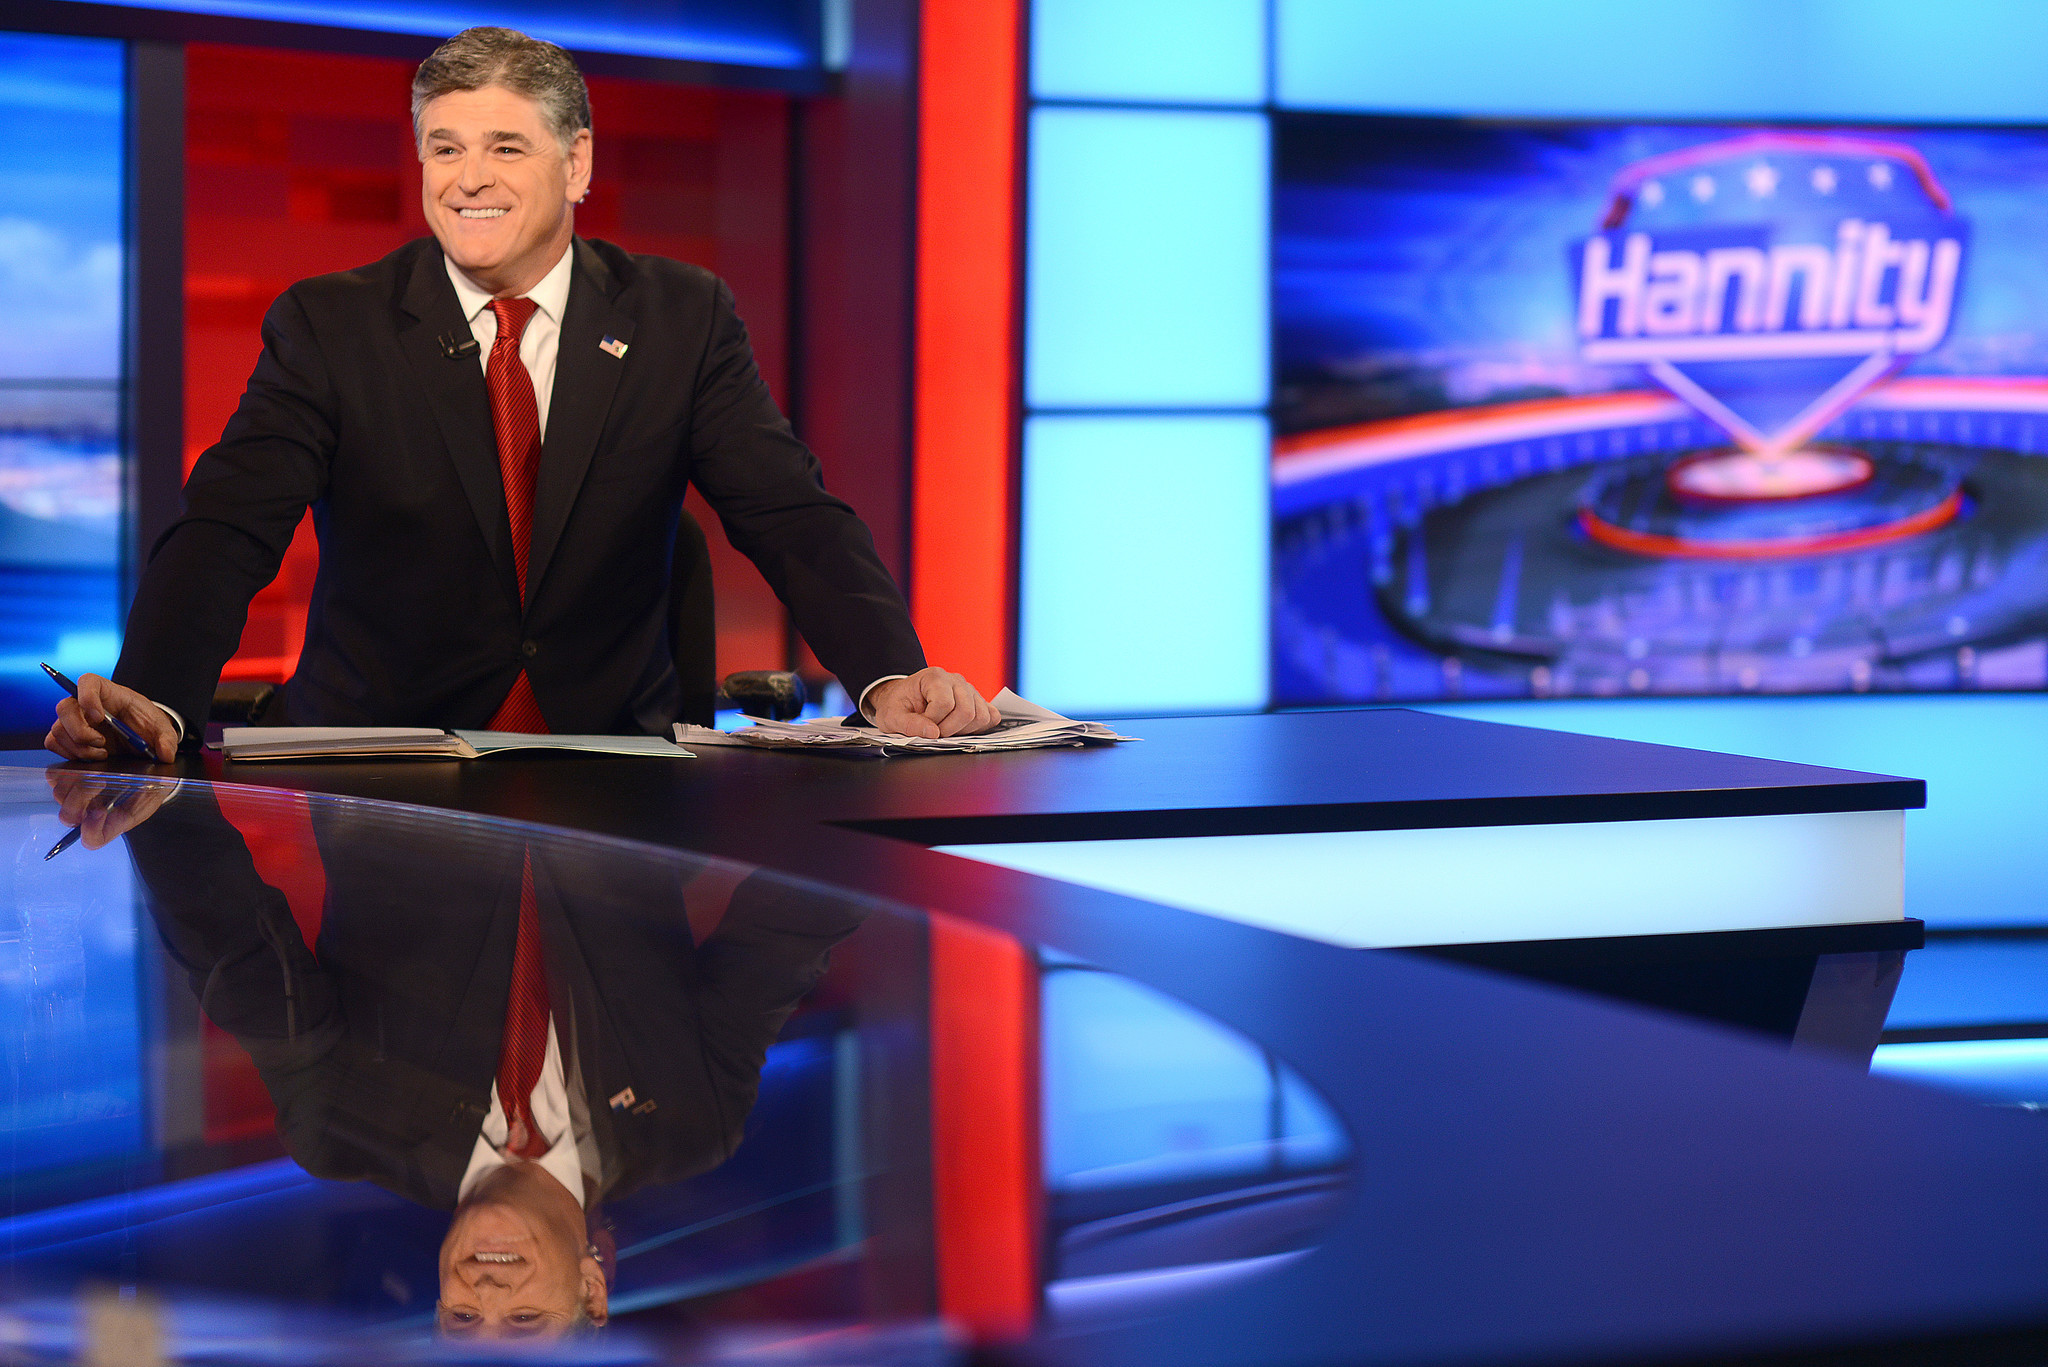 Donald Trump Set To Appear On 'Hannity' For Exclusive Interview